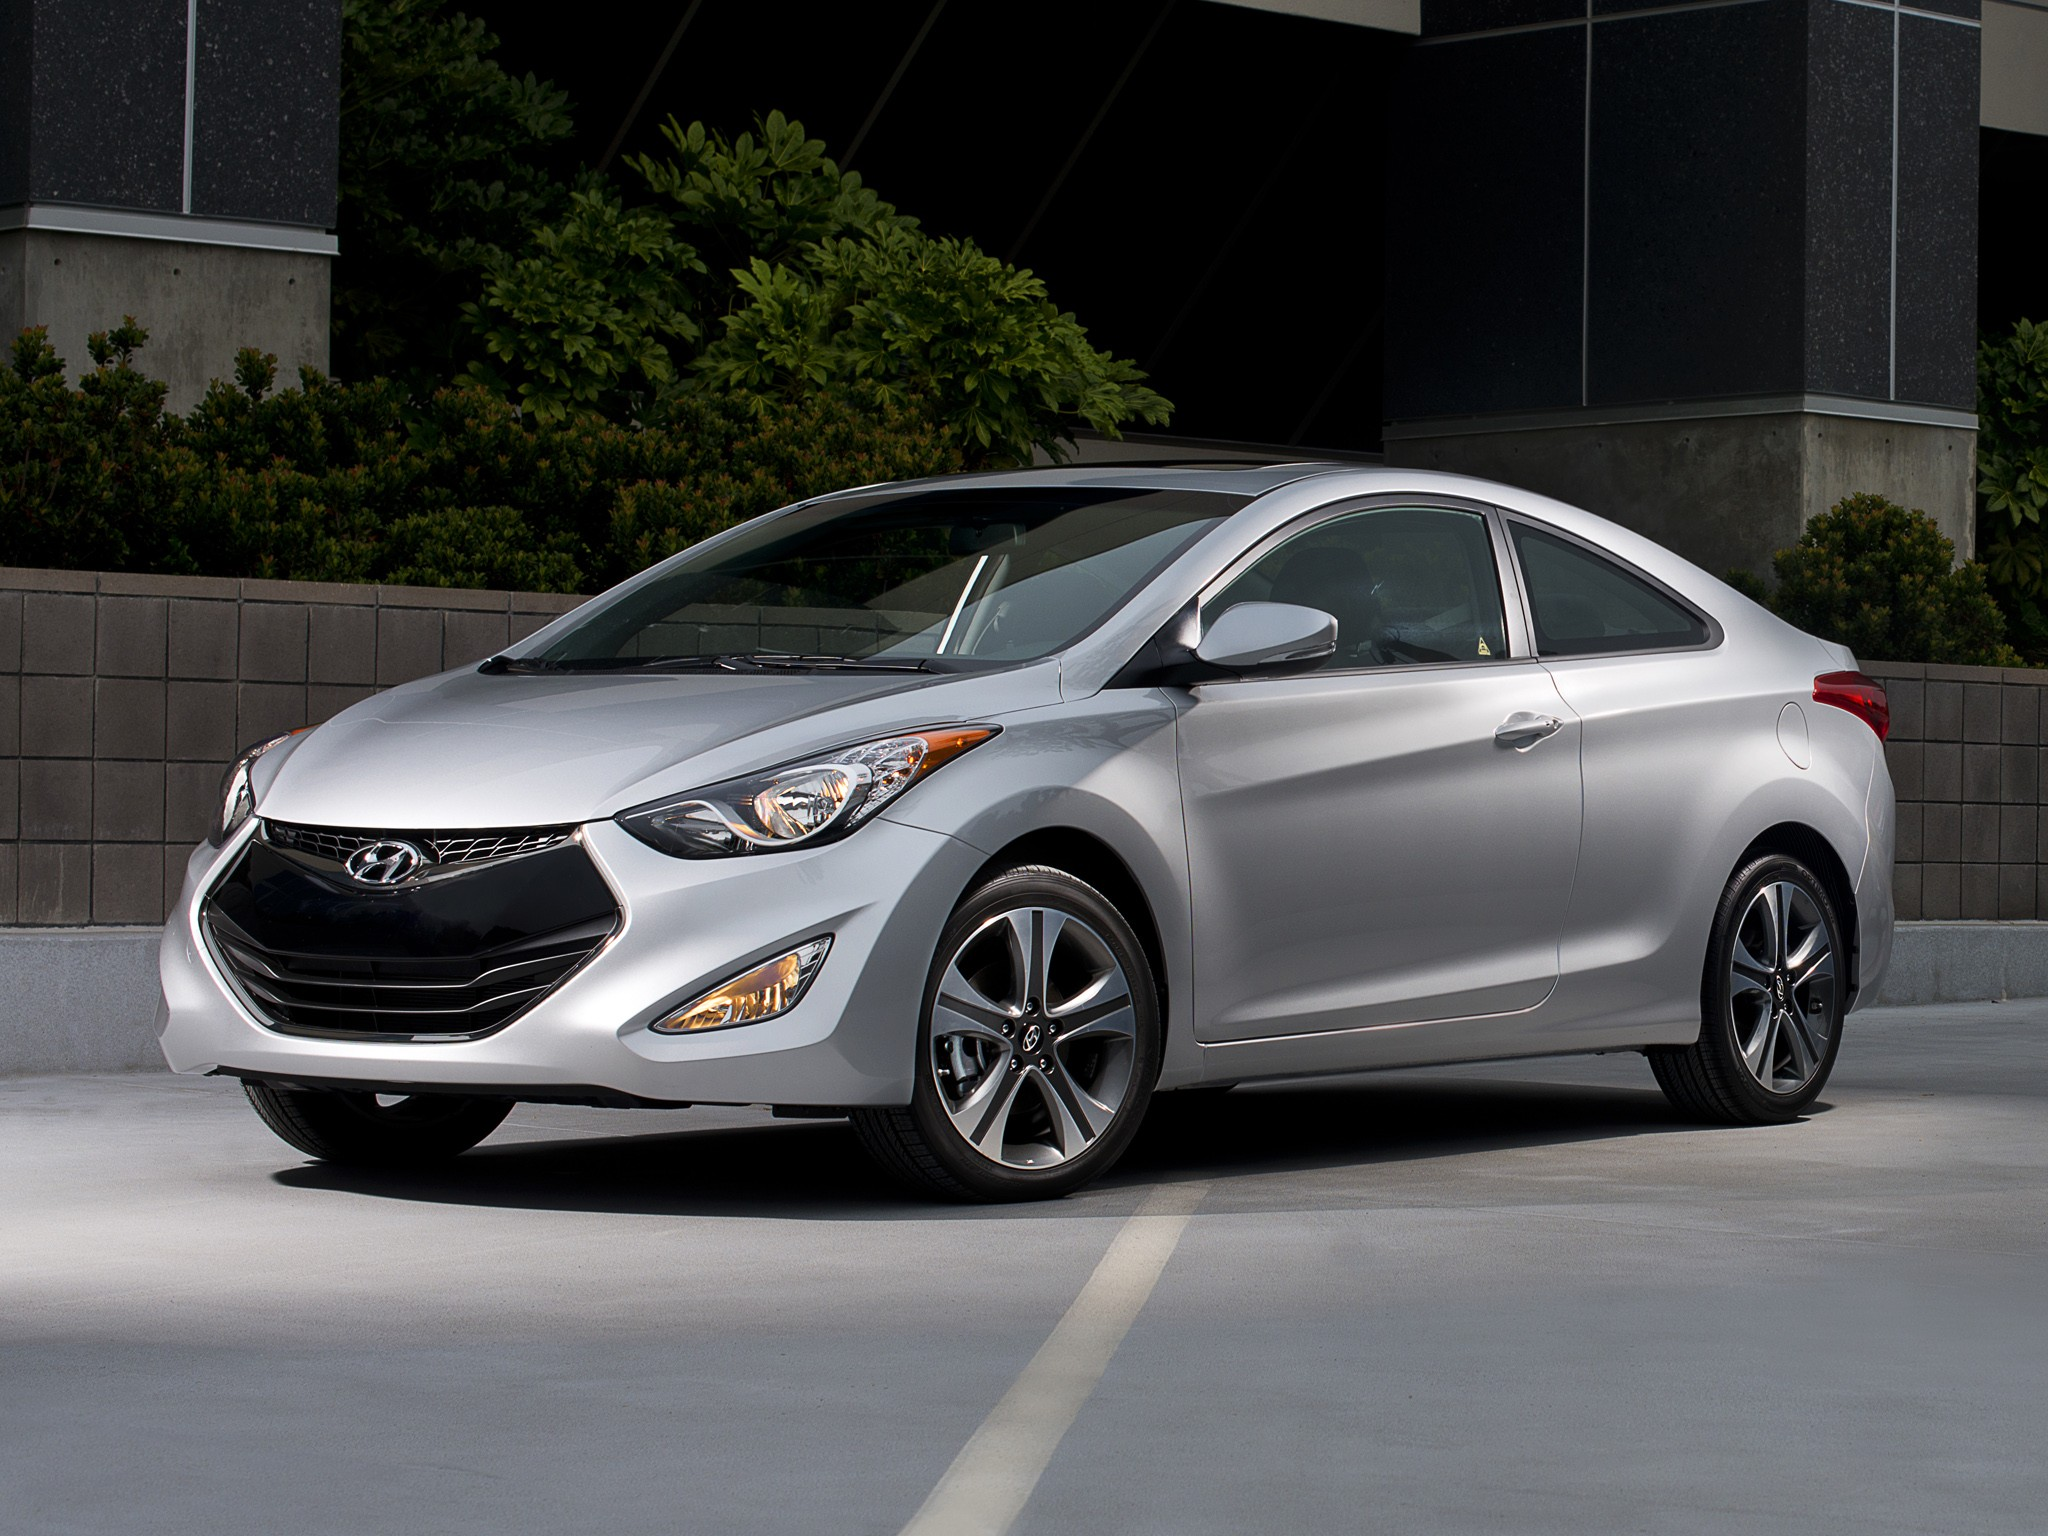 hyundai elantra coupe specs 2012 2013 2014 2015 2016 2017 2018 autoevolution. Black Bedroom Furniture Sets. Home Design Ideas